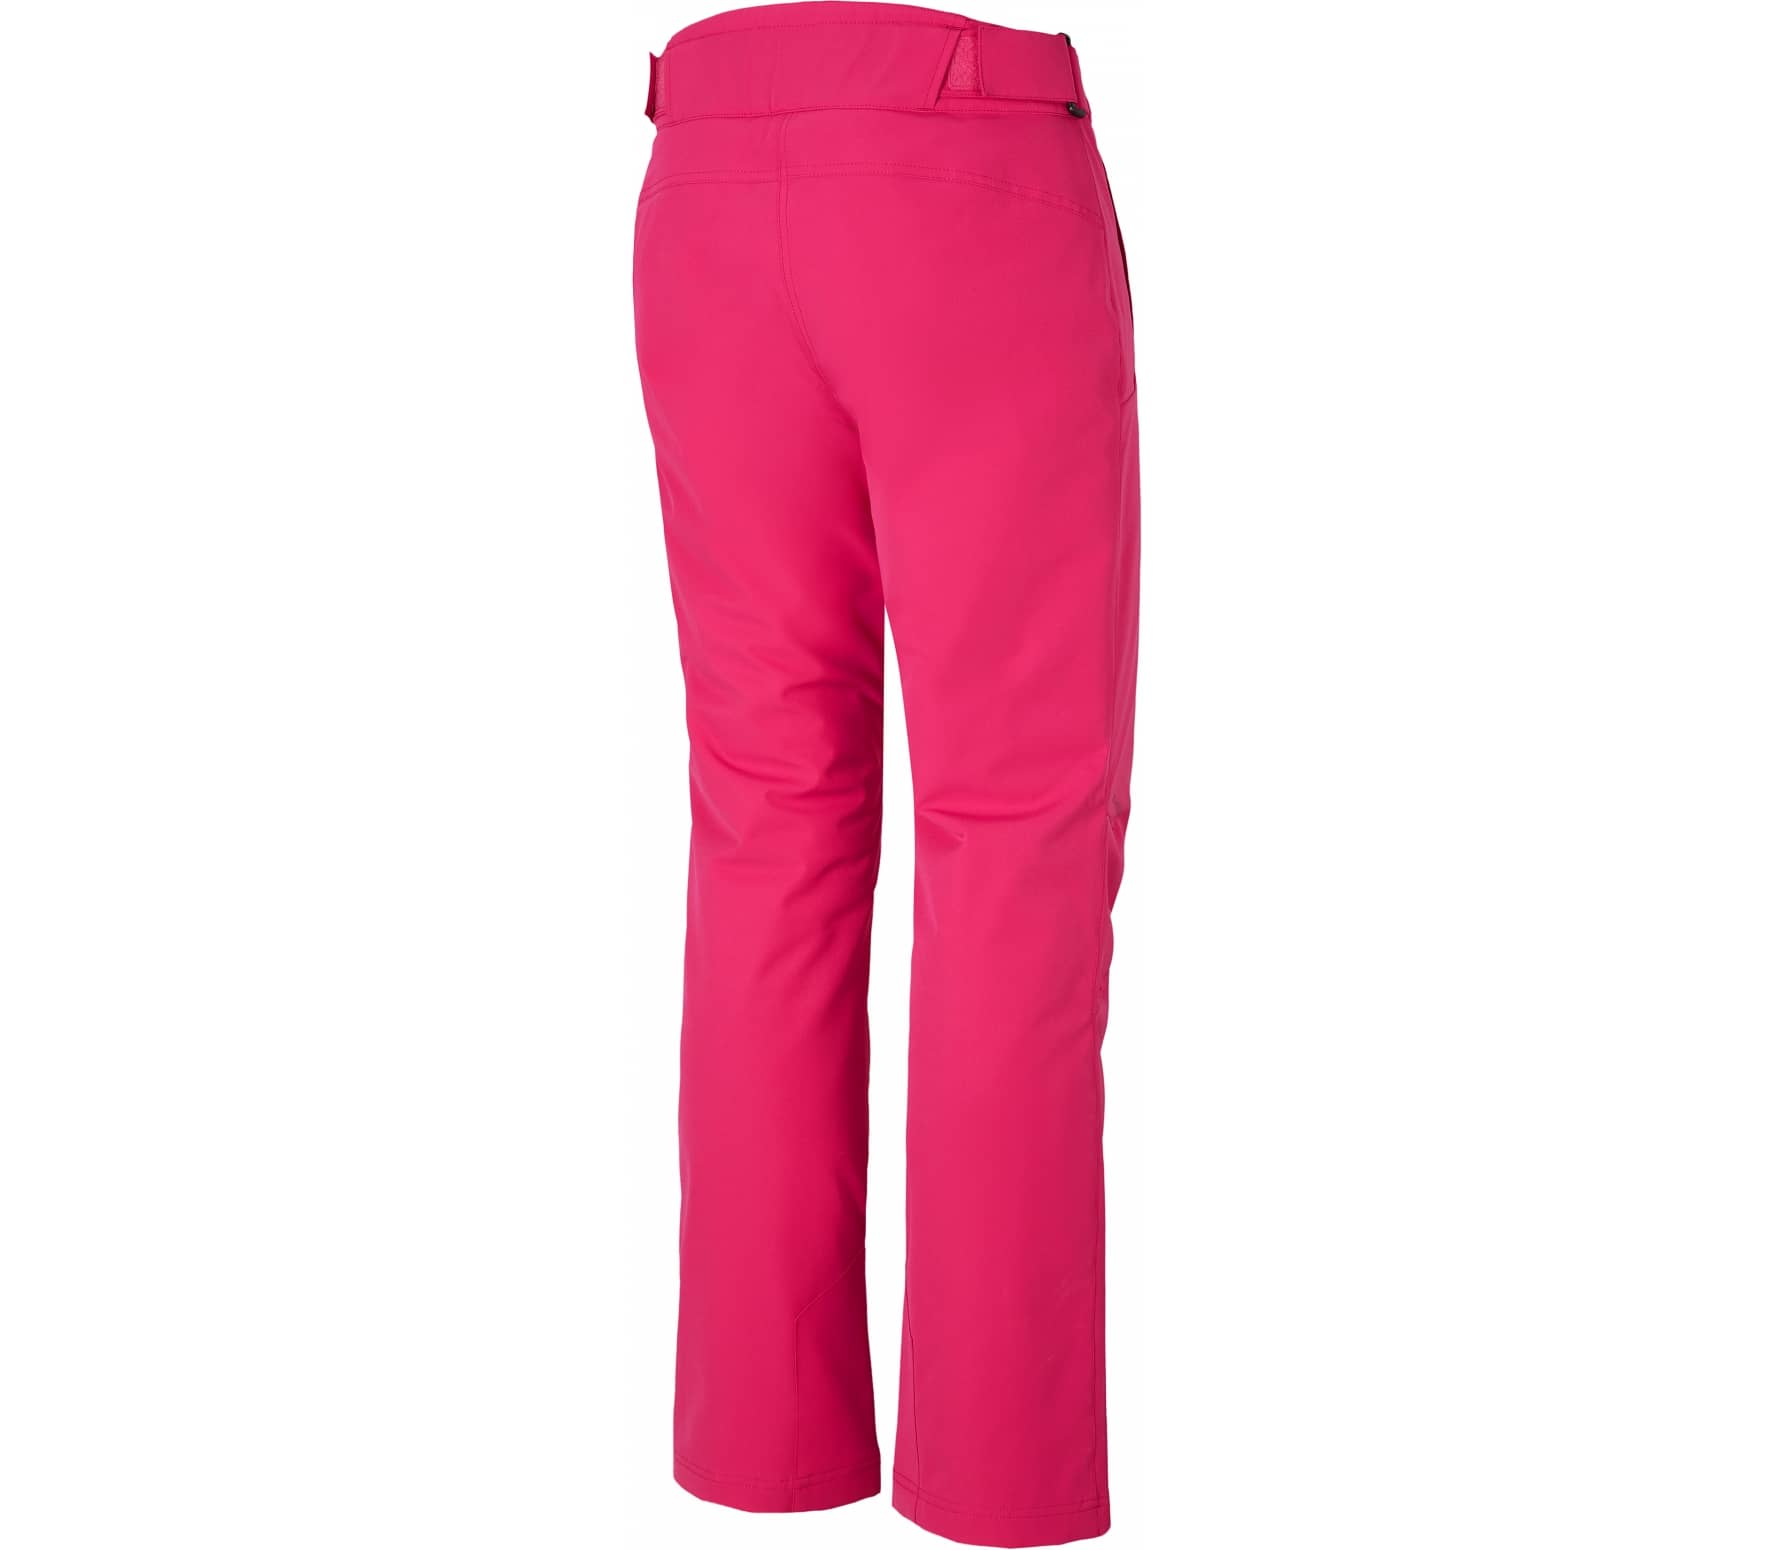 ziener taipa damen skihose pink im online shop von keller sports kaufen. Black Bedroom Furniture Sets. Home Design Ideas